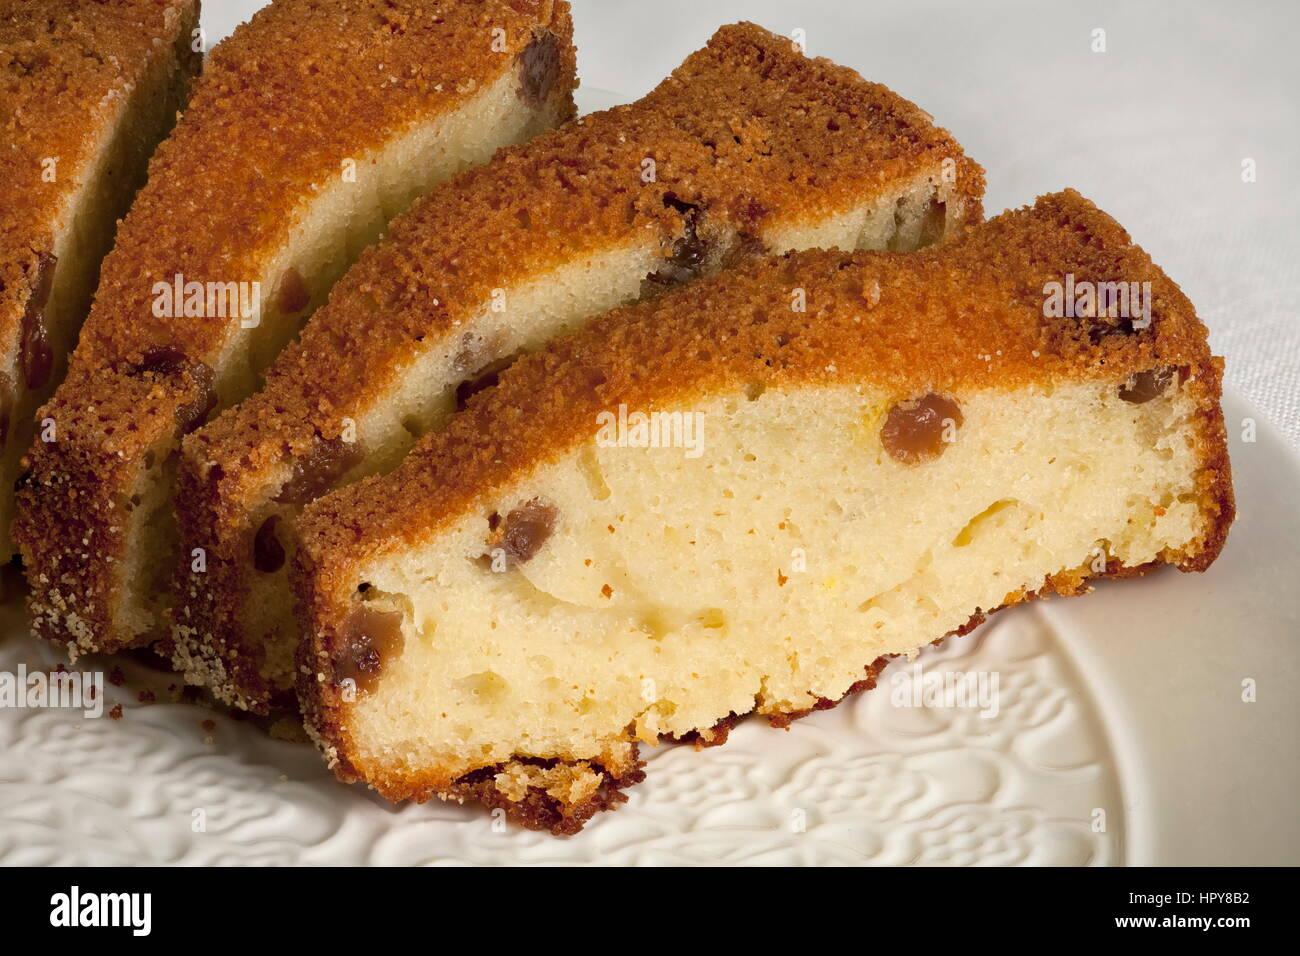 Curd cake with raisins and ruddy crust slices macro shot,creative cuisine, delicious pastry, tasty breakfast, - Stock Image